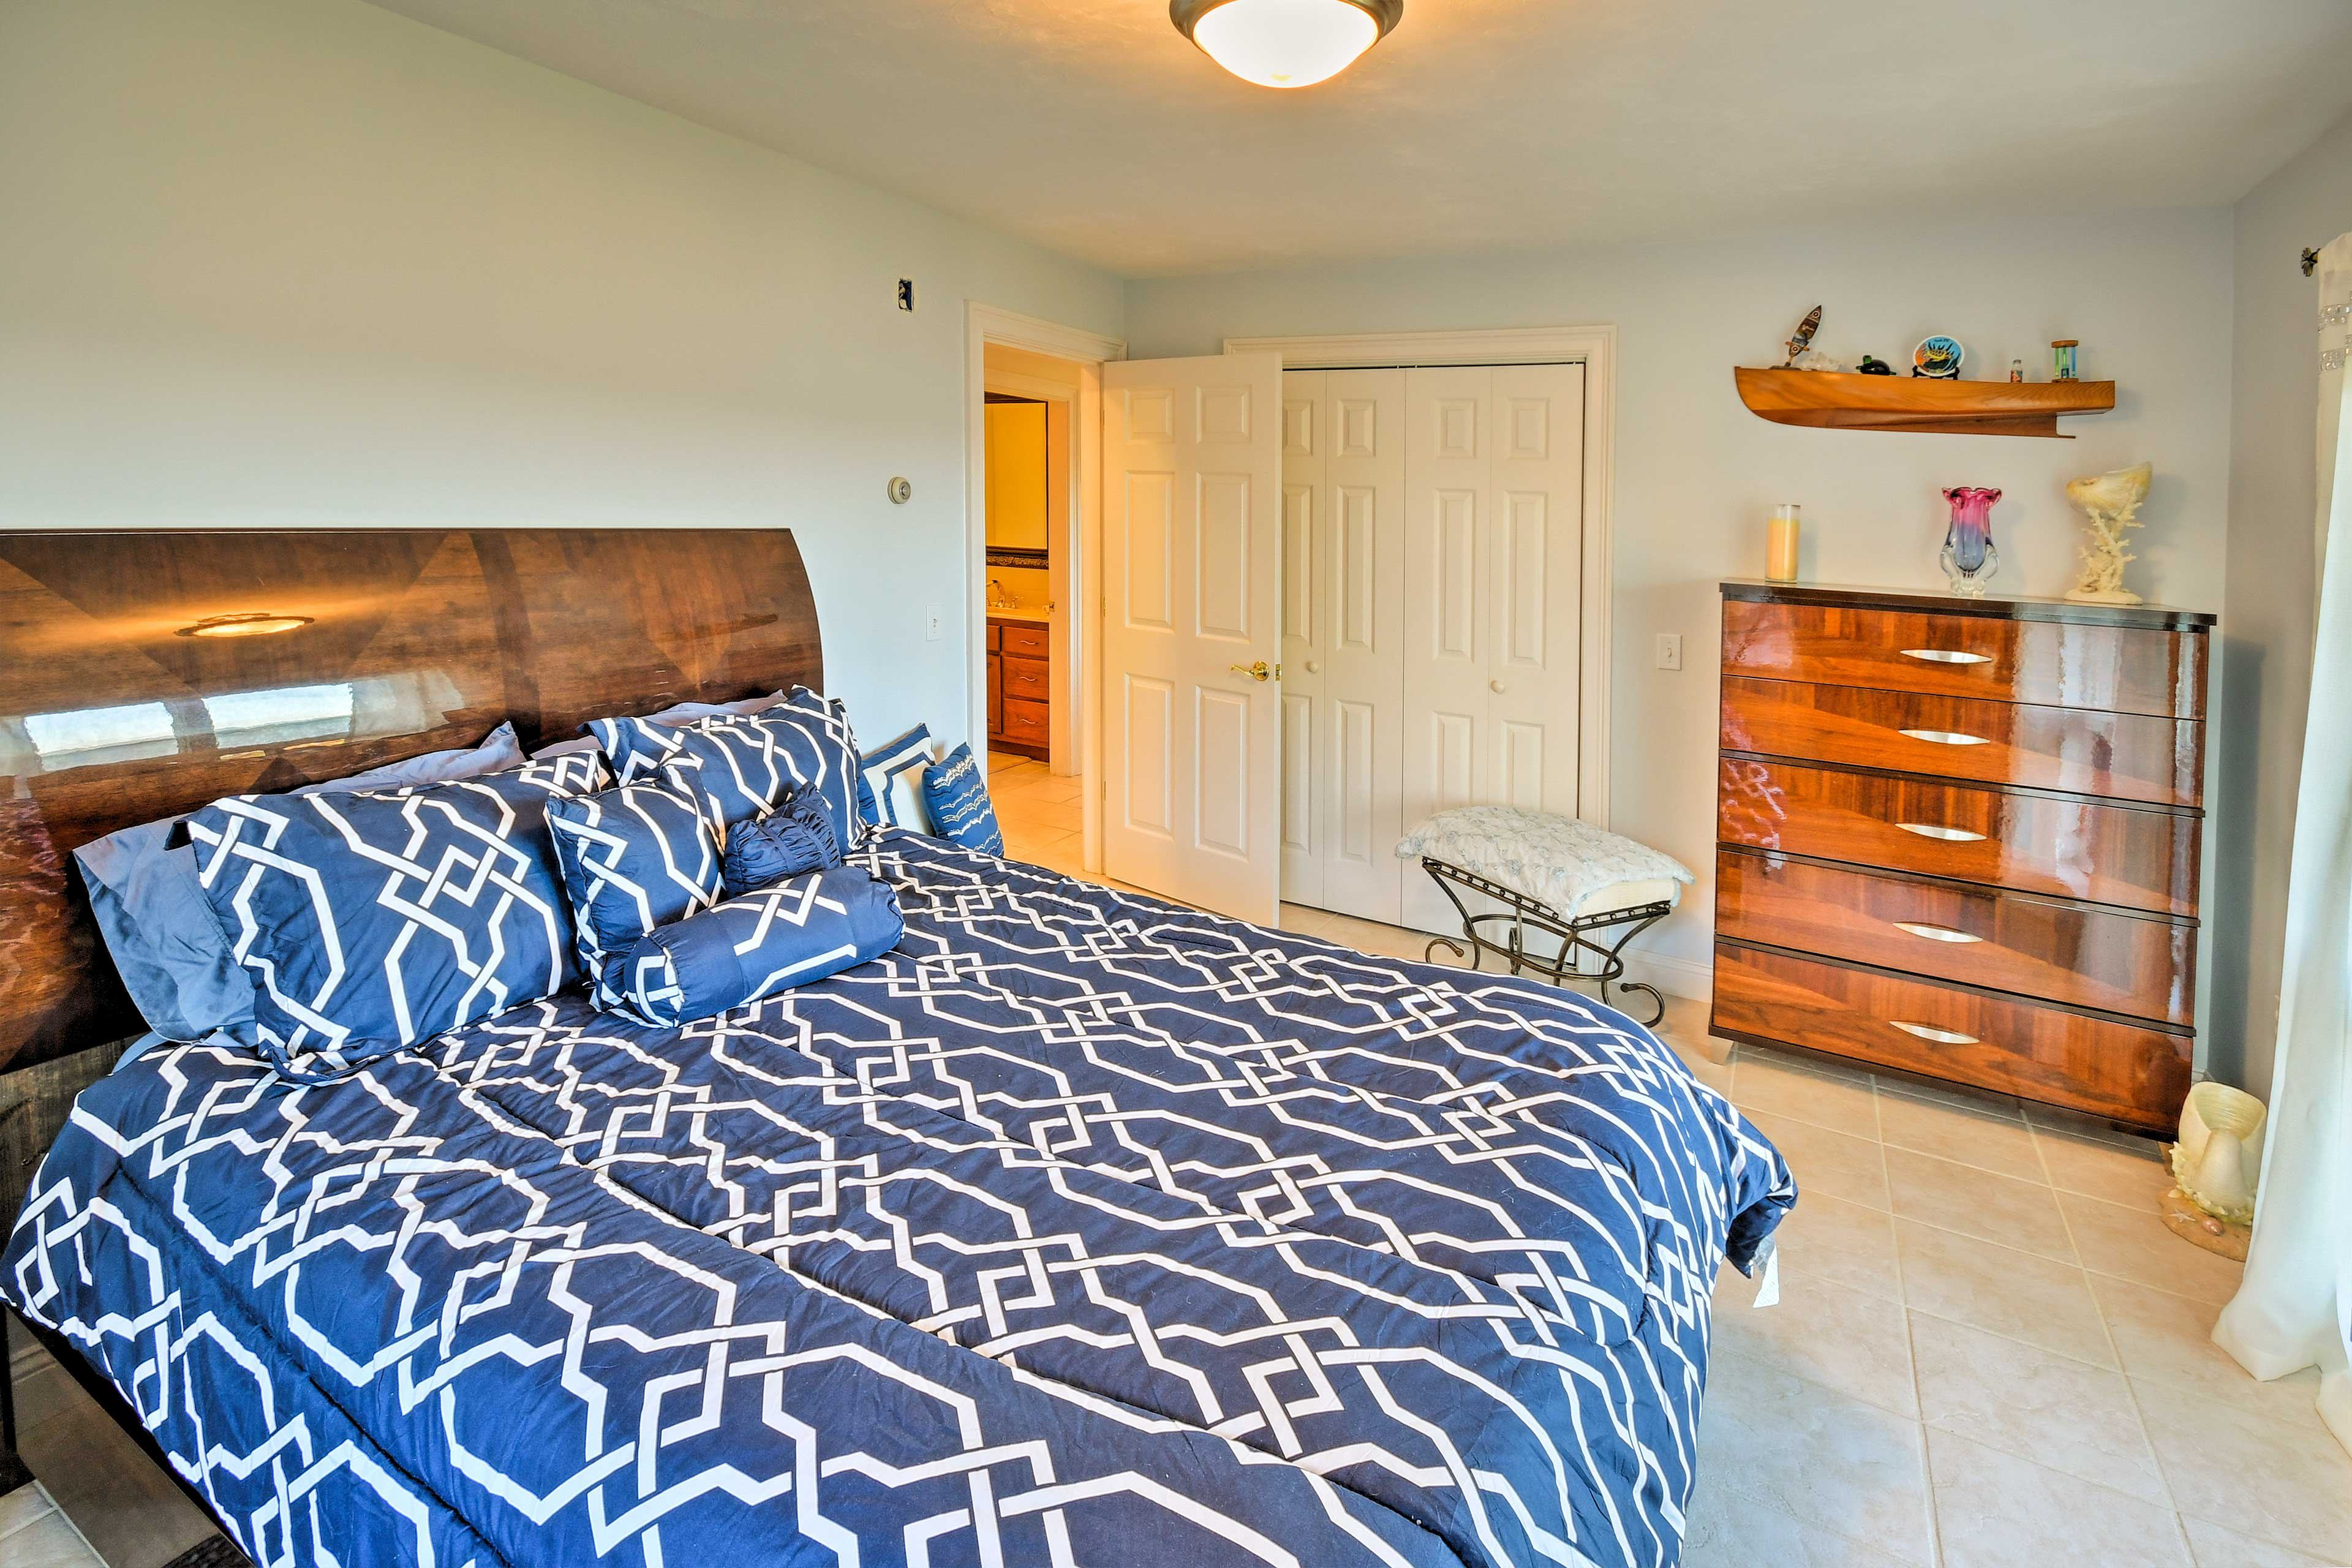 You'll find 3 bedrooms downstairs - each featuring an ocean view!